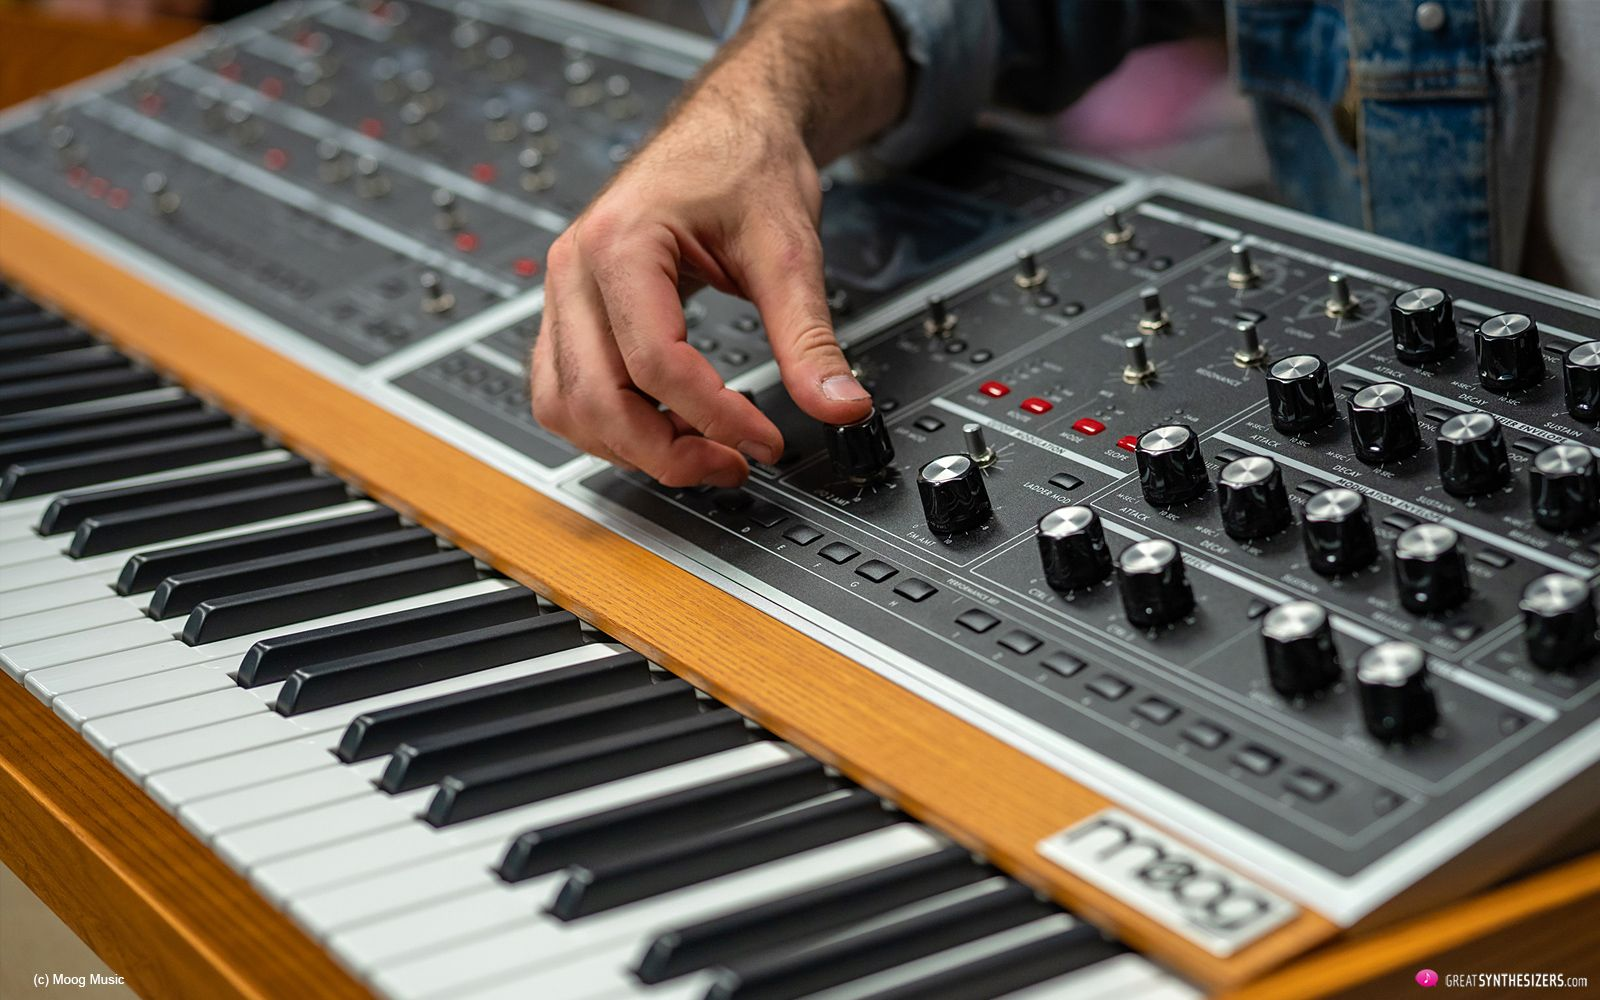 Moog ONE - the ultimate Moog synthesizer